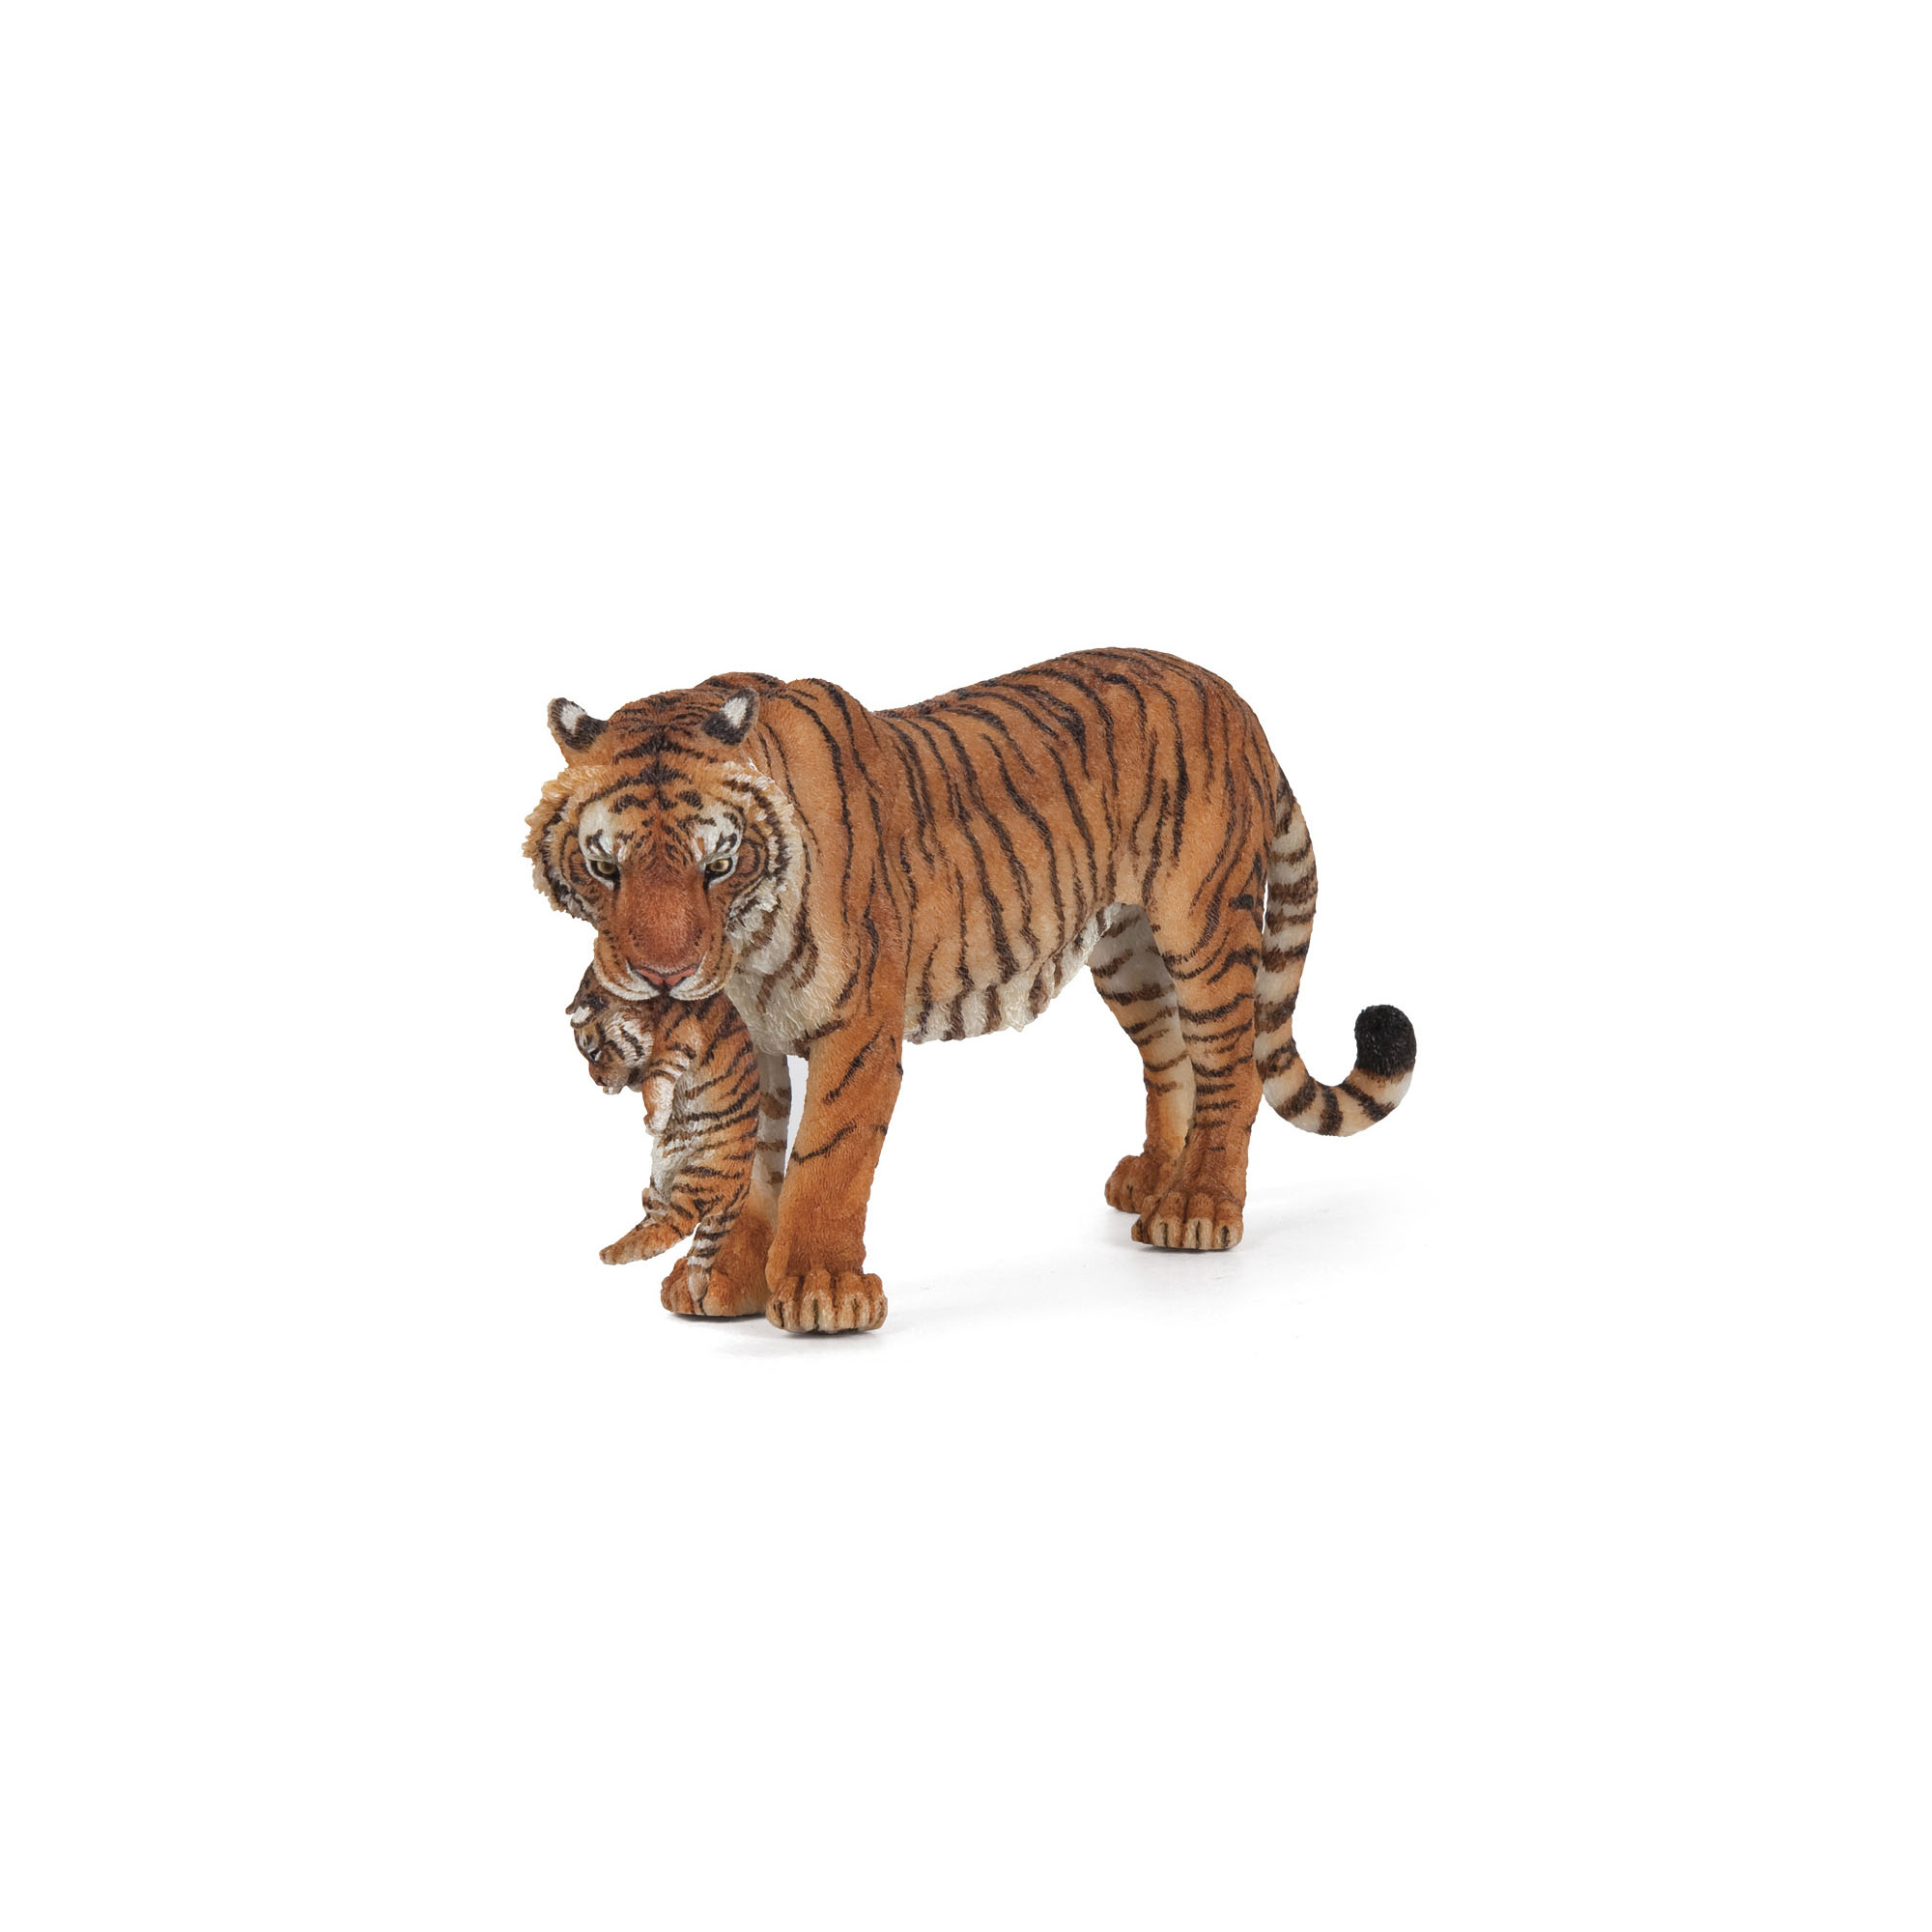 Tiger with cub figure